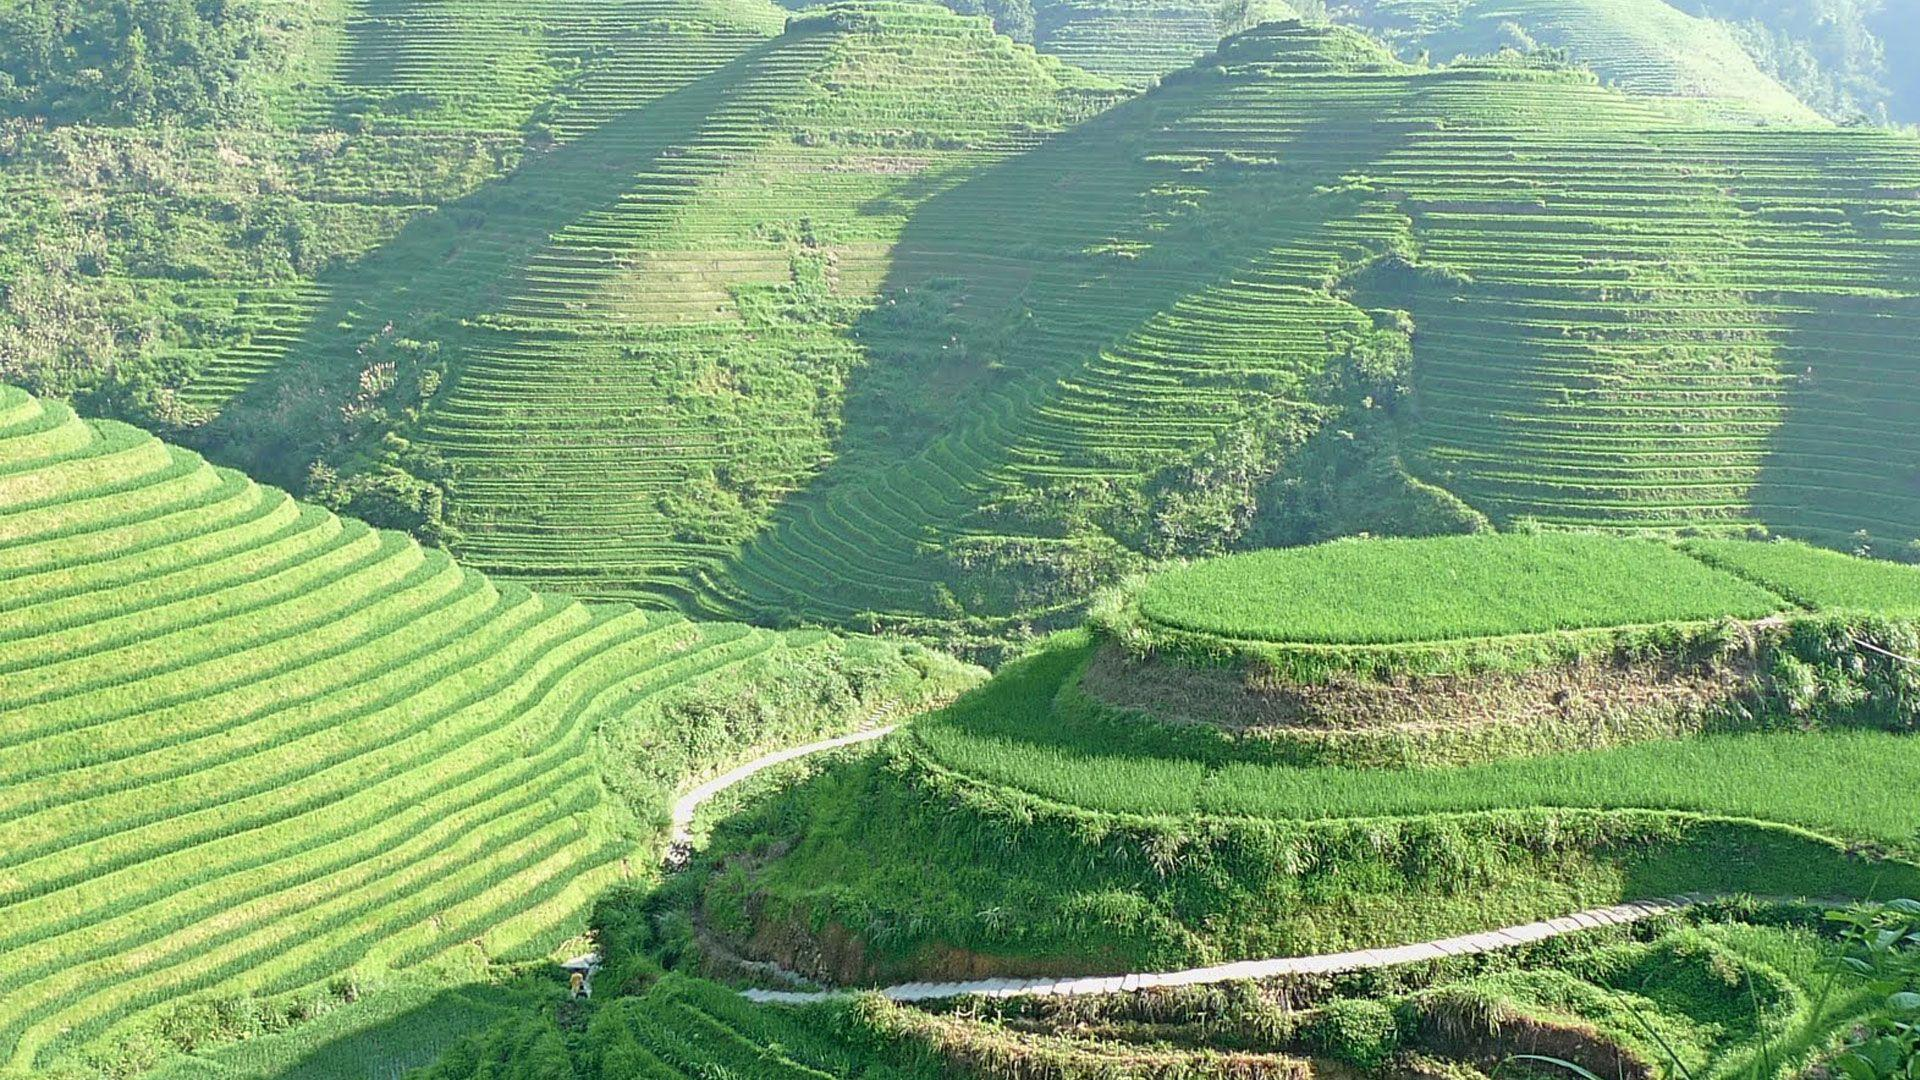 banaue rice terraces - luzon philippines | Ancient Constructs ...